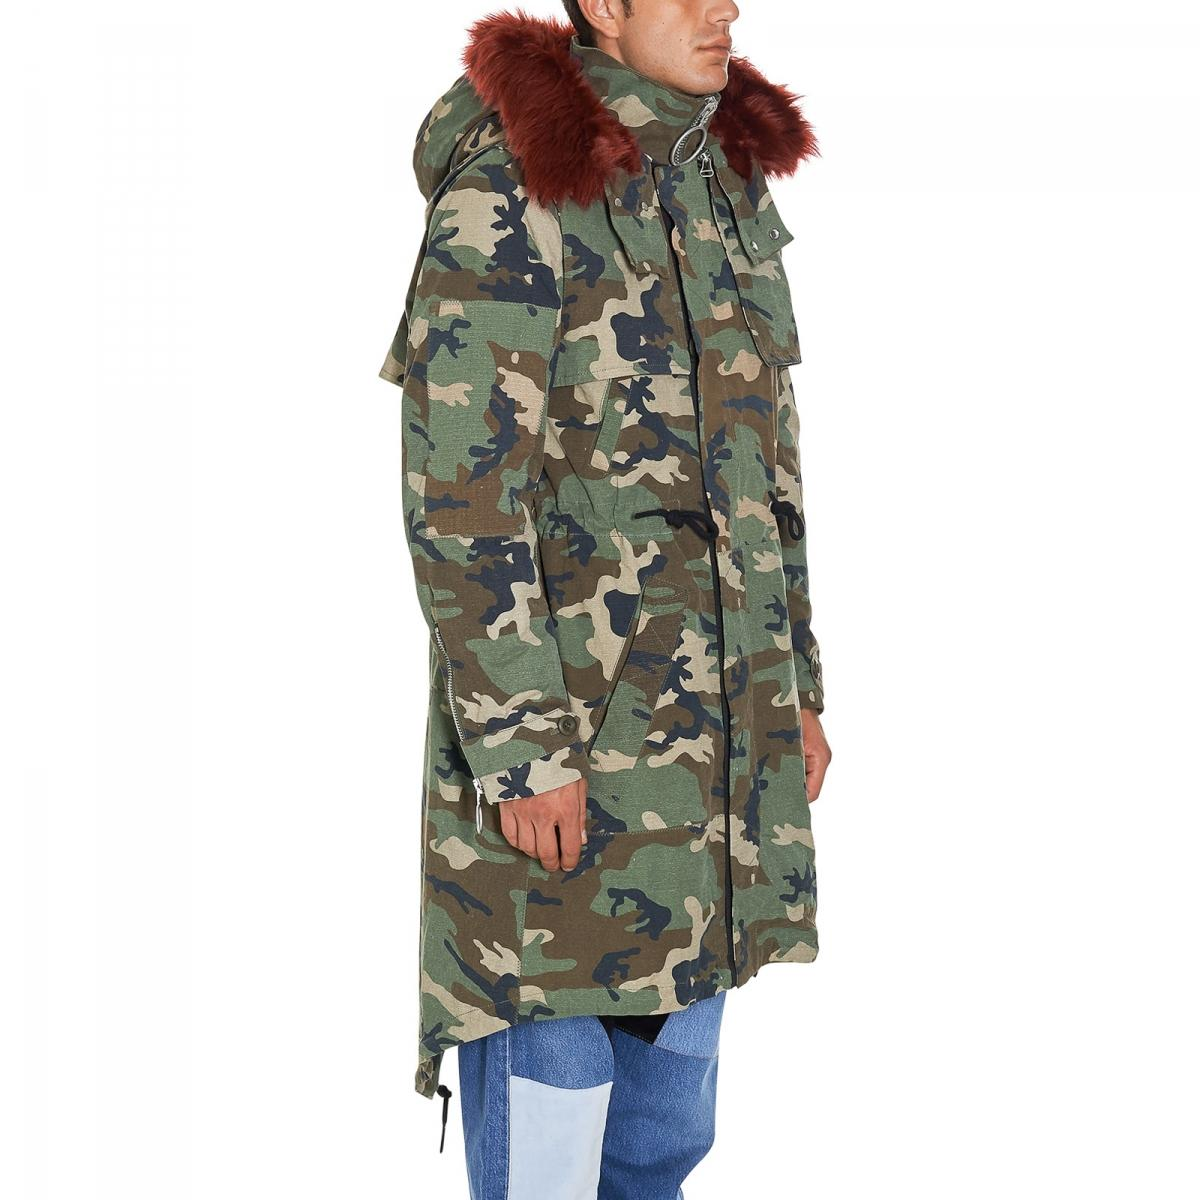 Off-White c/o Virgil Abloh Cotton Camouflage Parka in Green for Men